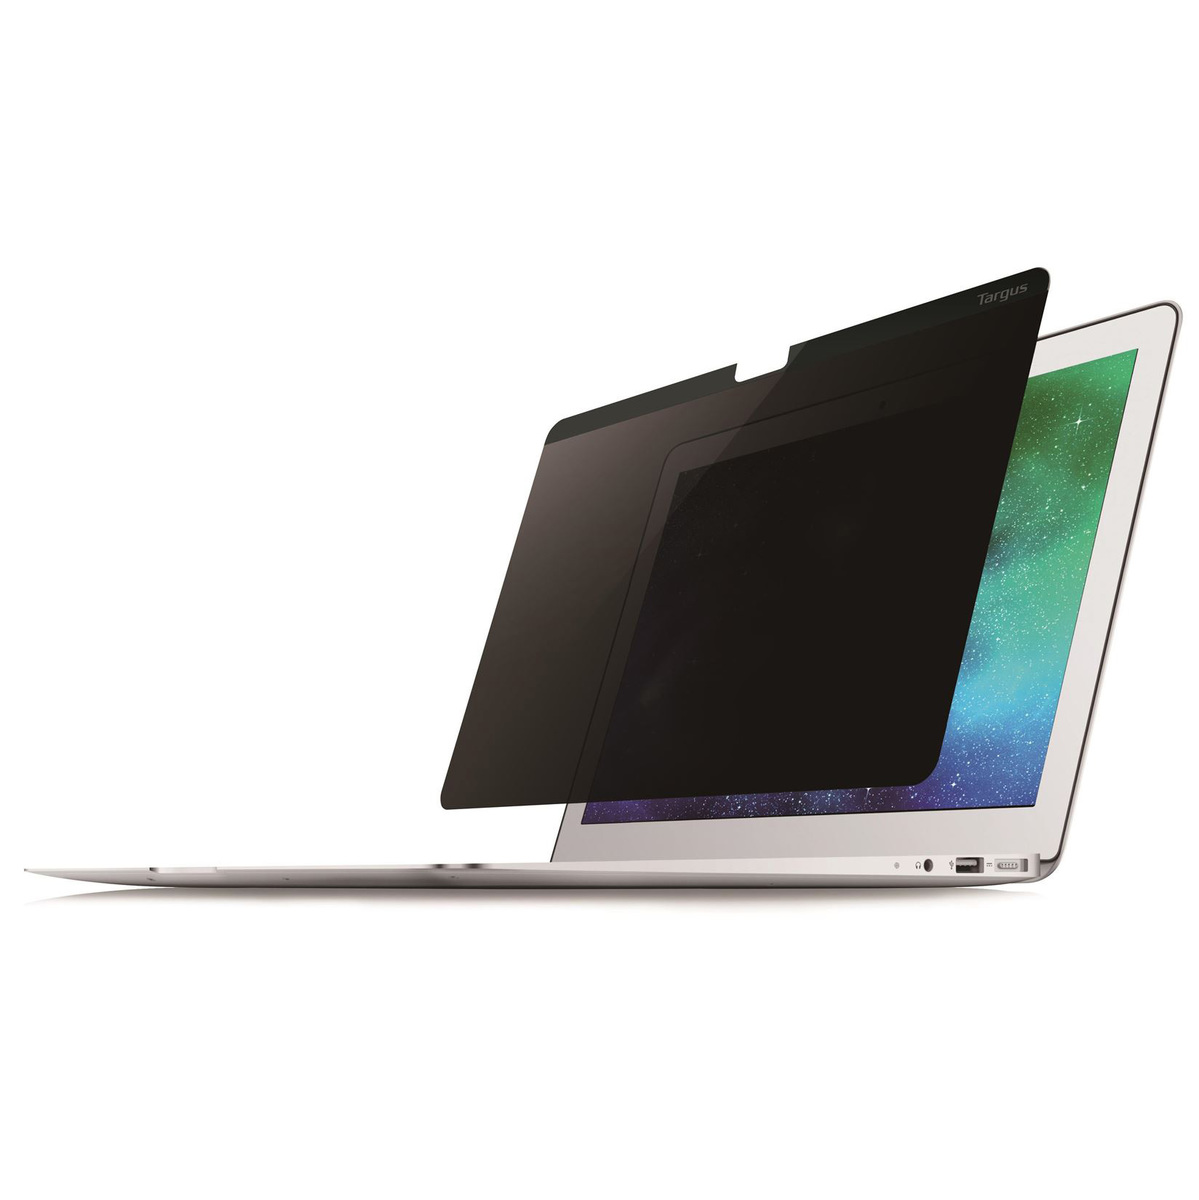 """ASM133MBAP-60 MAGNETIC PRIVACY SCREEN FOR APPLE MACBOOK 13.3"""""""